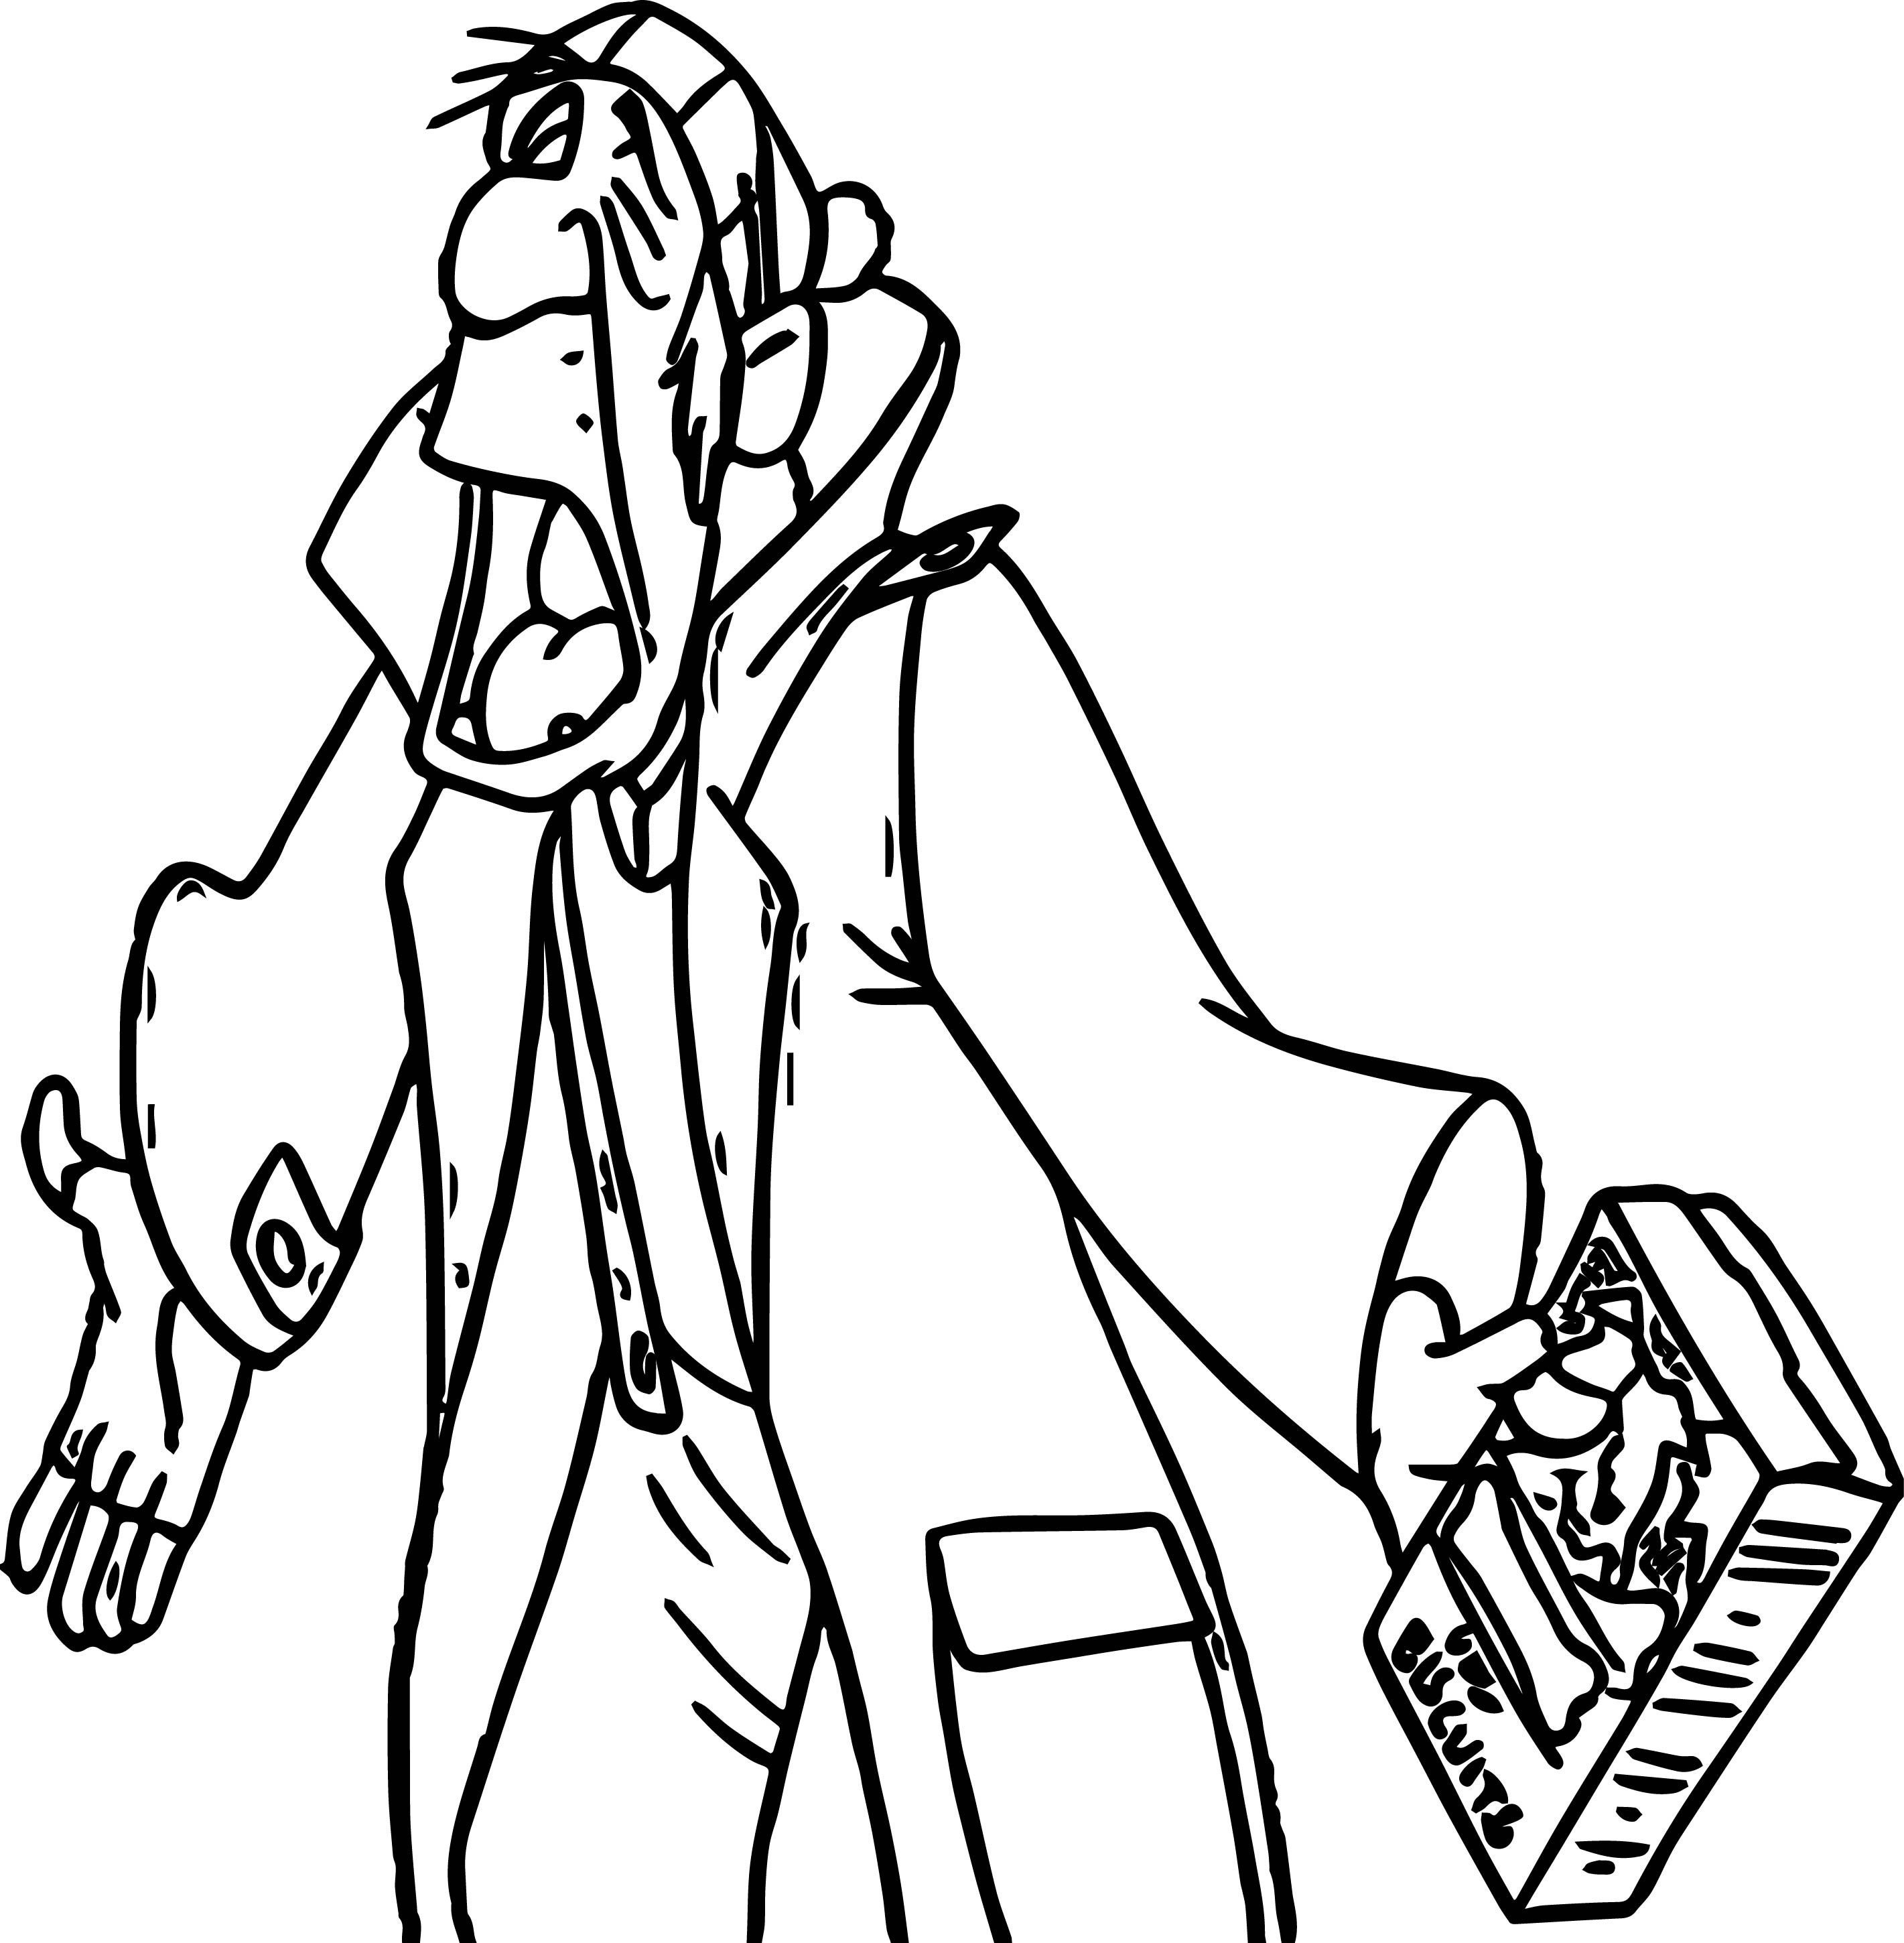 Dogbis Man Coloring Pages